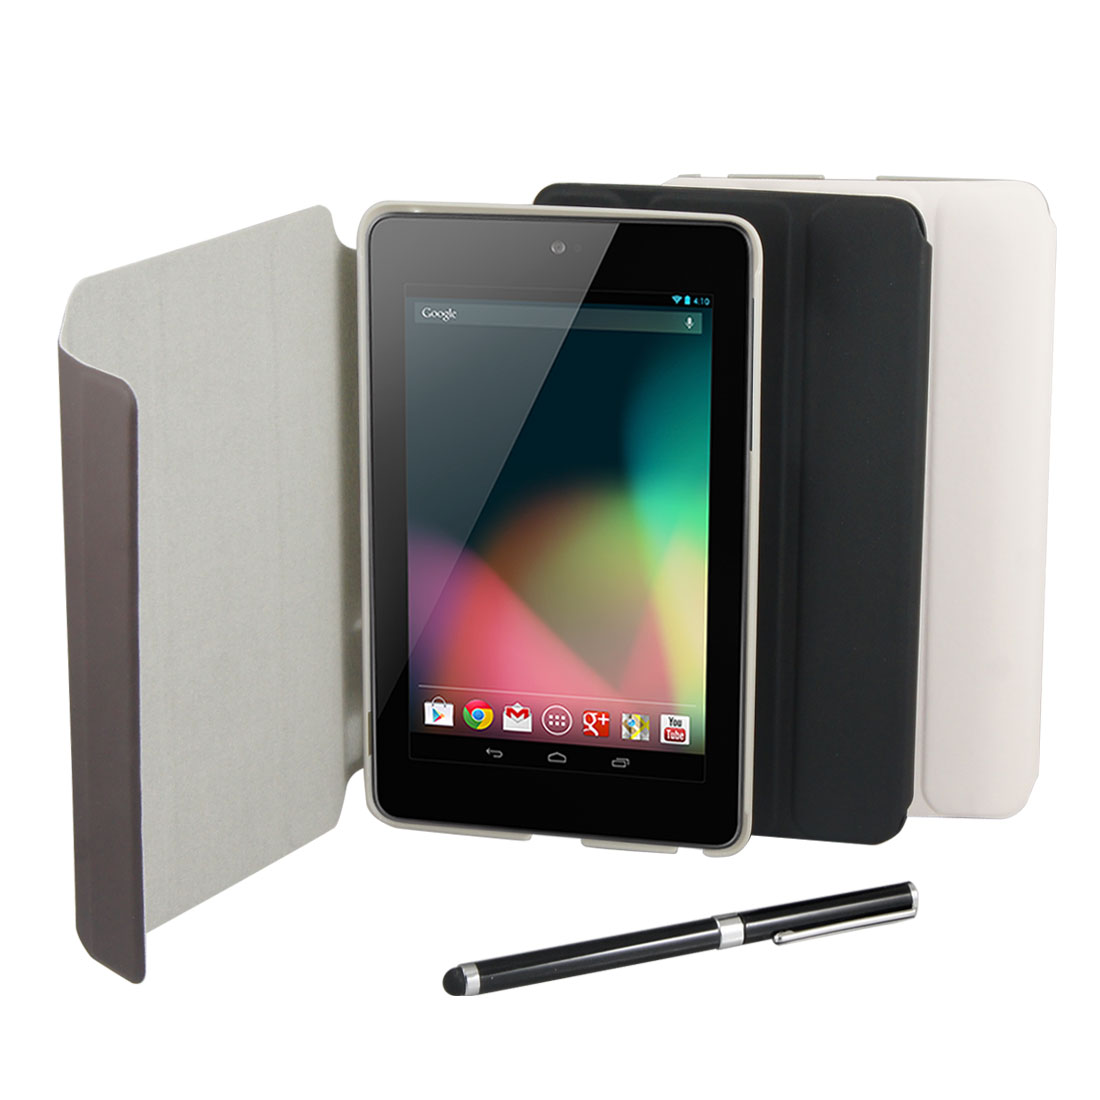 Brown Faux Leather Skin Cover Case + Stylus Pen for Google Nexus 7 Tablet